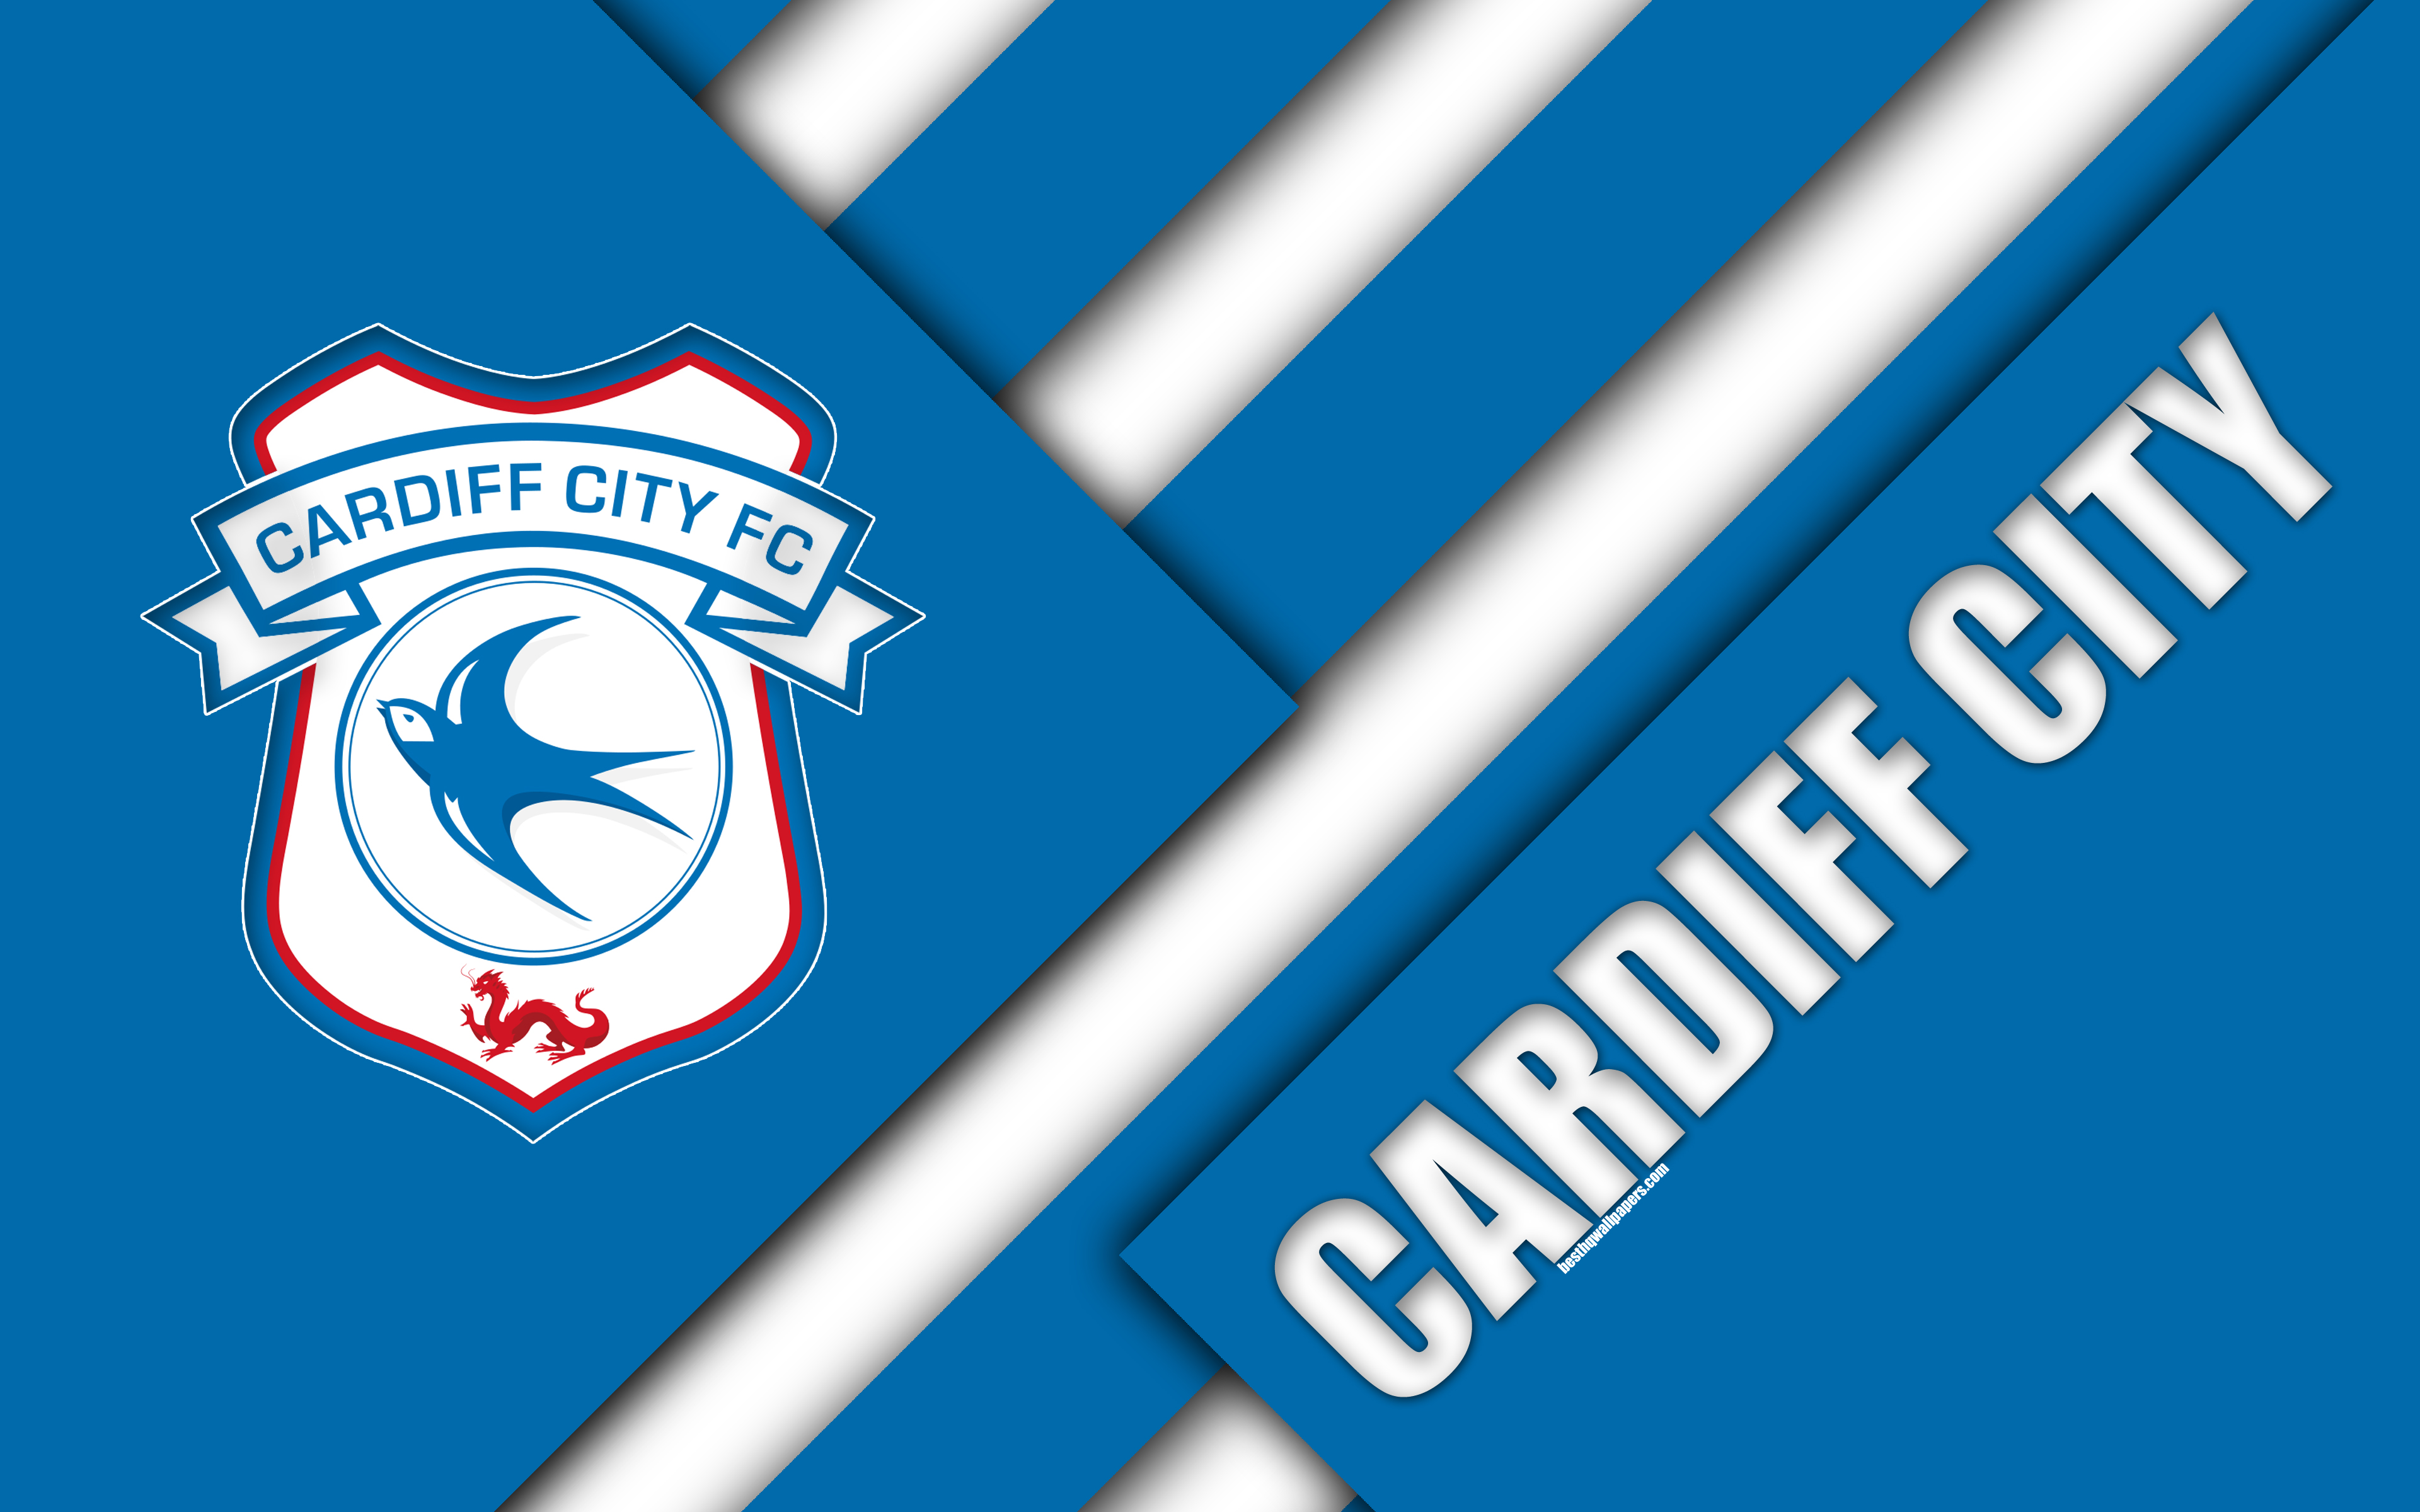 Download wallpapers Cardiff City FC, logo, 4k, blue white ...